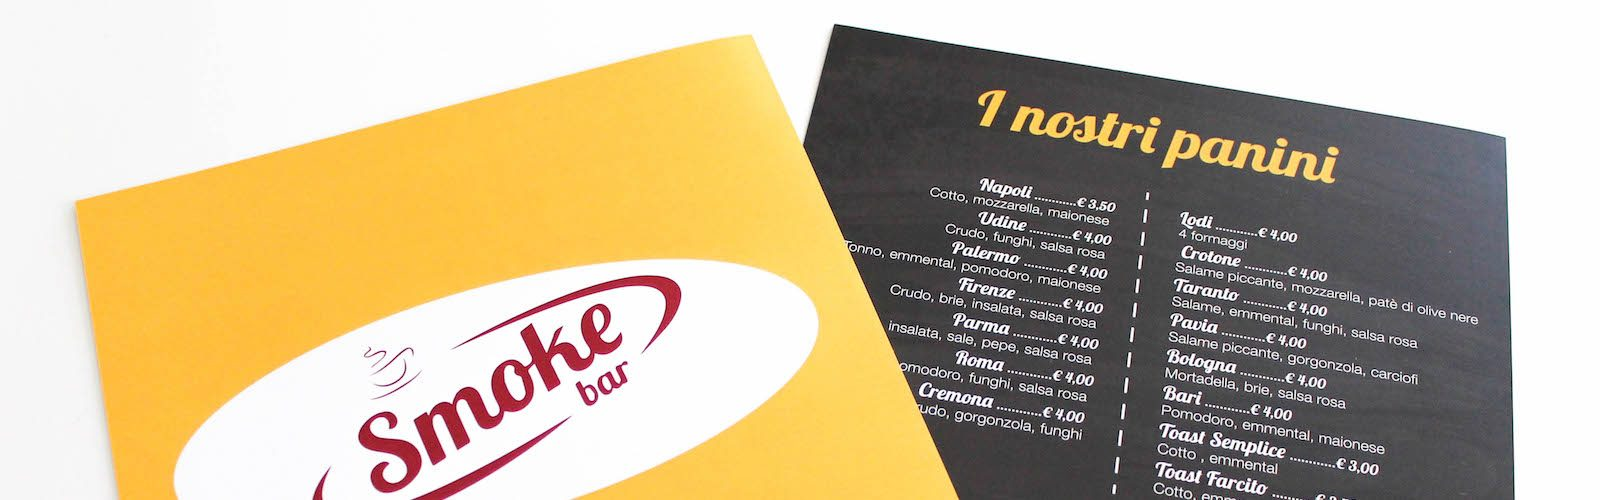 impaginazione-menu-smoke-bar-grafica-melographic-studio